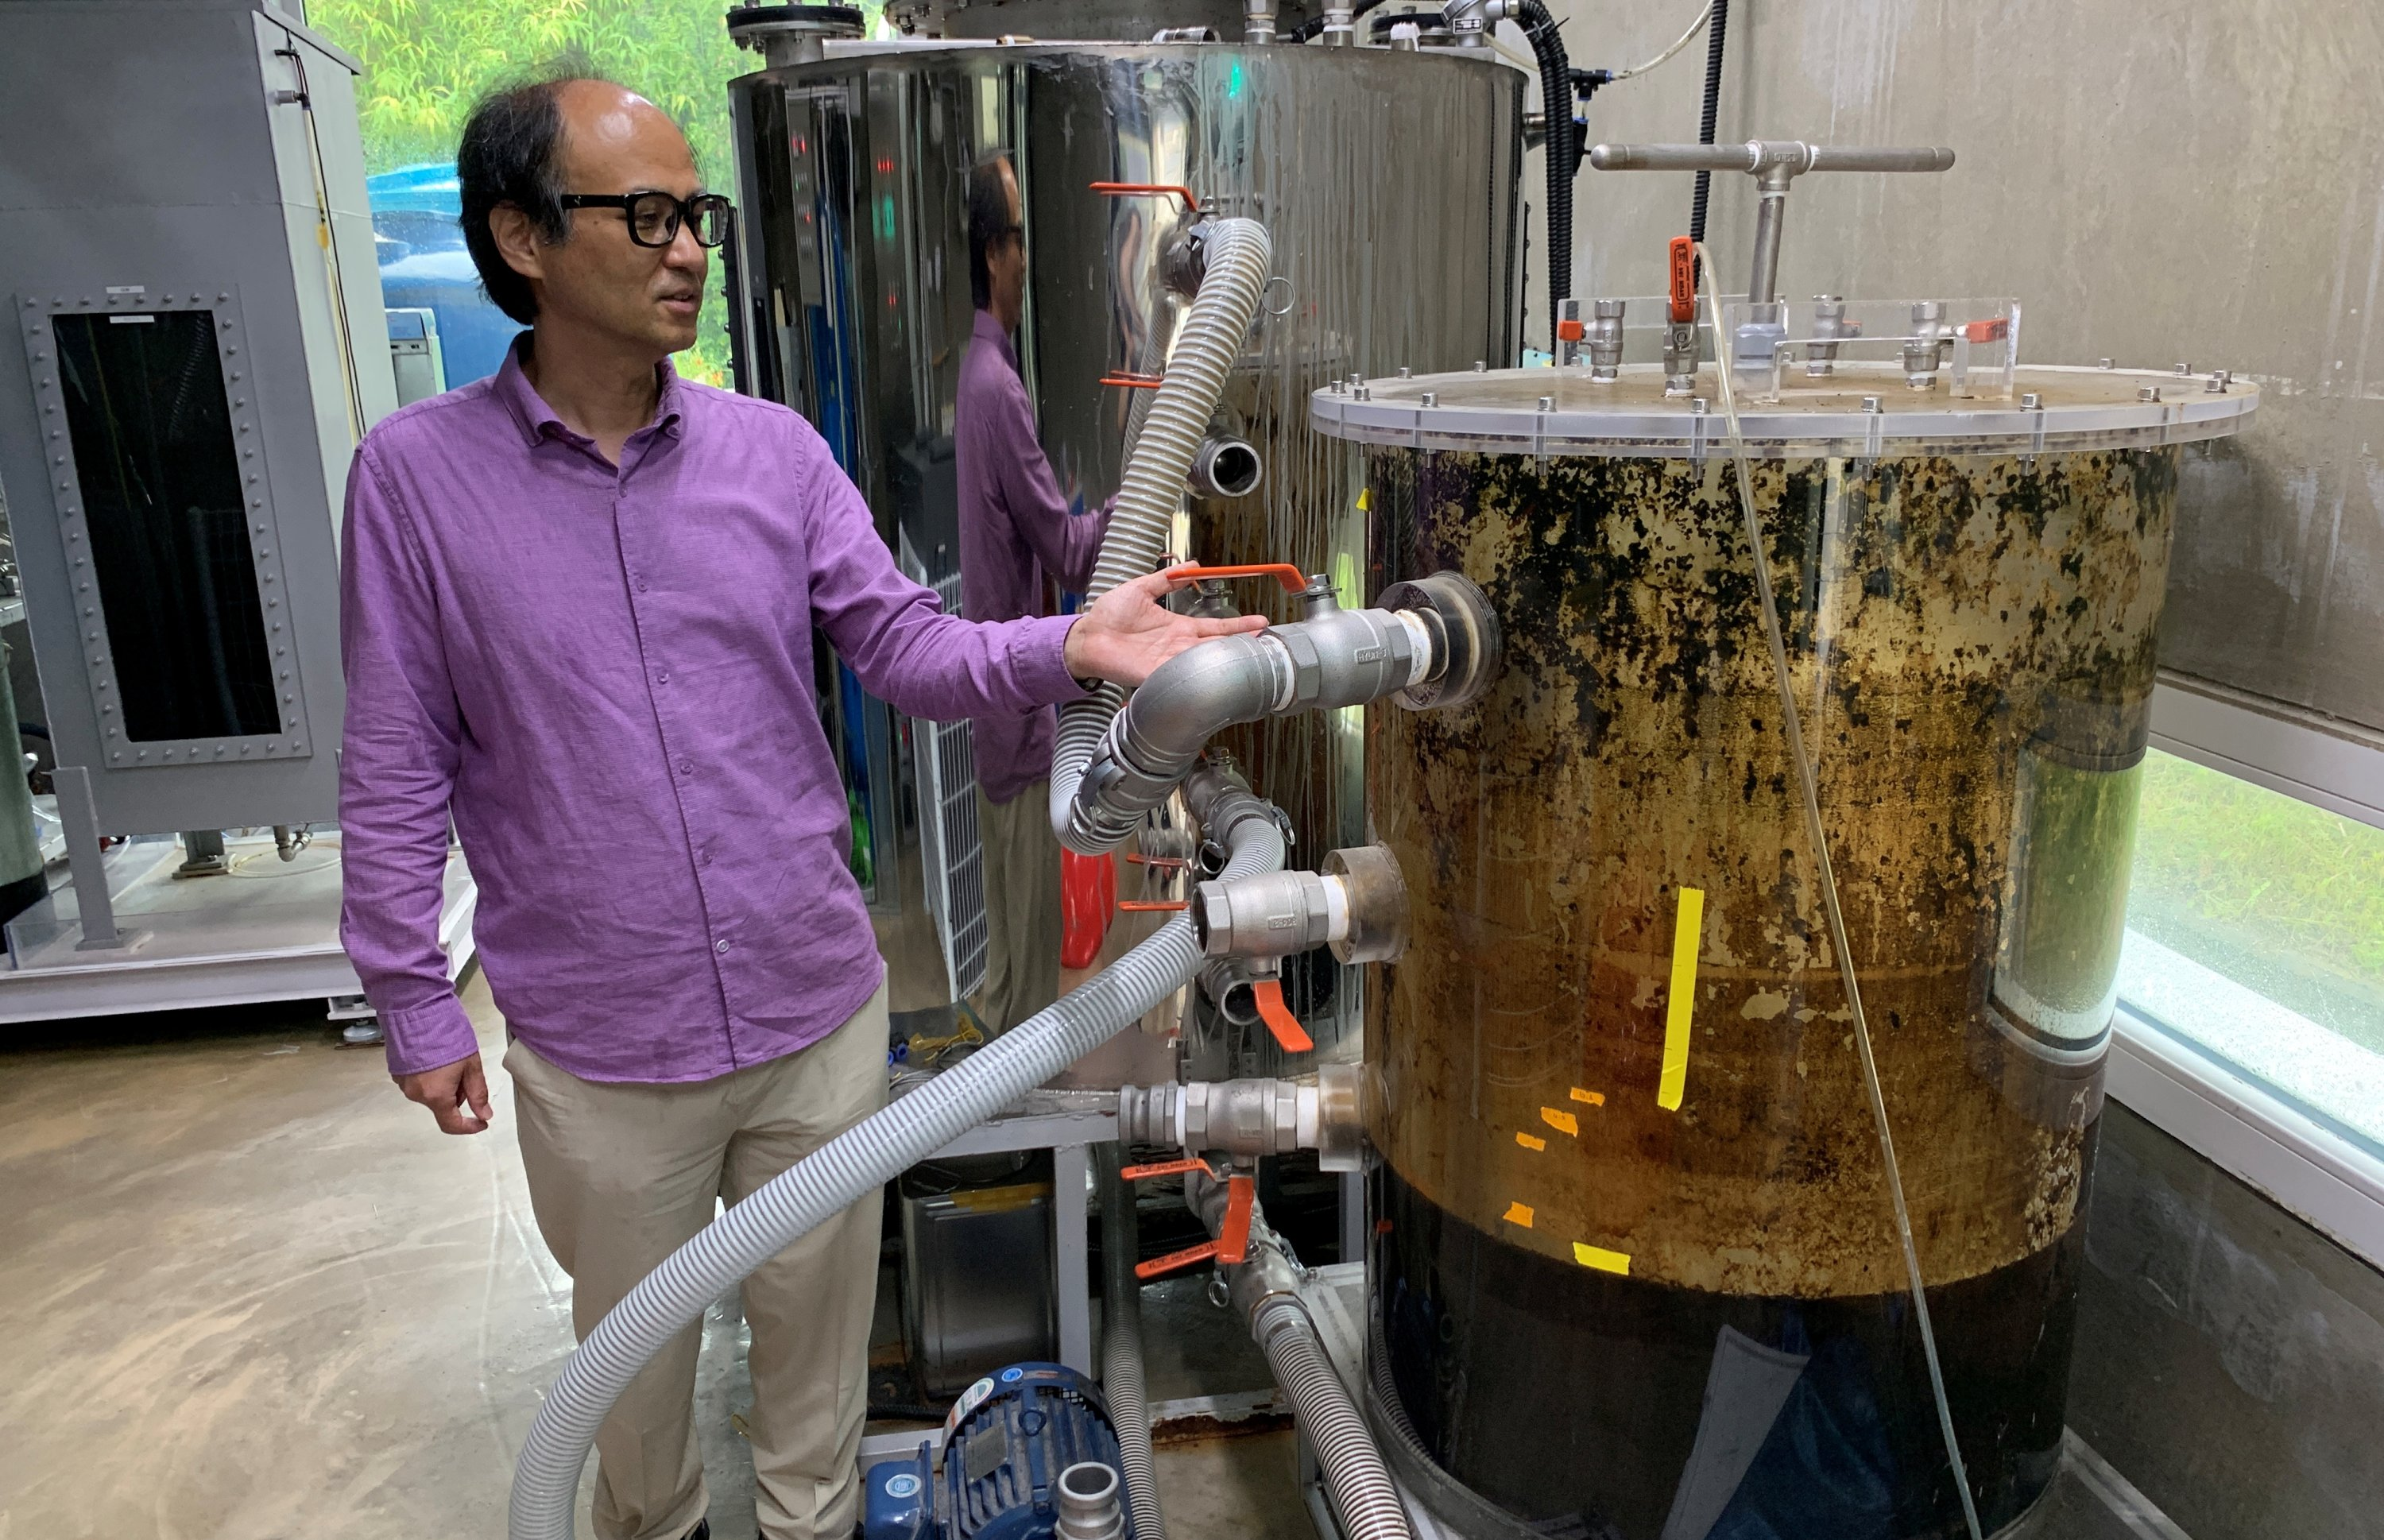 Cho Jae-weon, a South Korean professor at Ulsan National Institute of Science and Technology (UNIST), stands next to a feces tank at a laboratory in Ulsan, South Korea, July 6, 2021. (Reuters Photo)